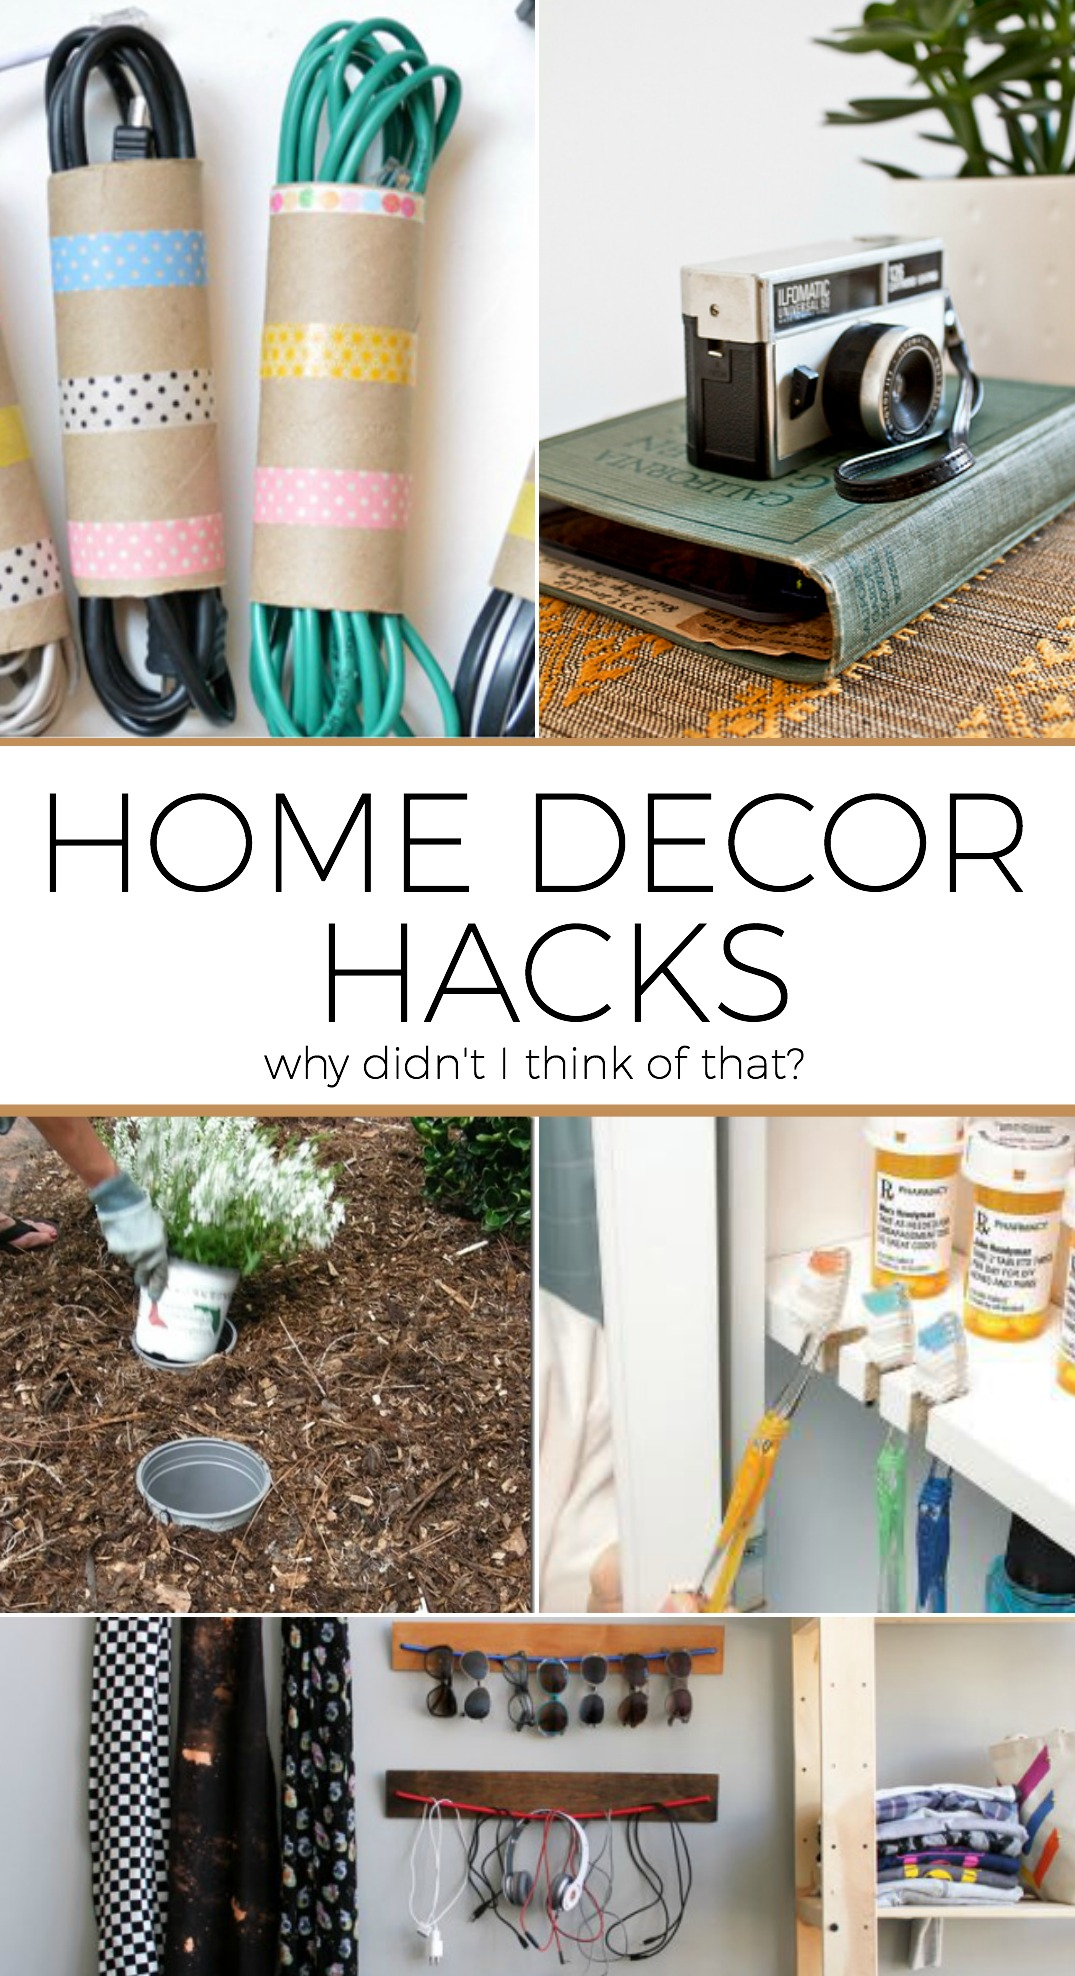 Home Decor Hacks